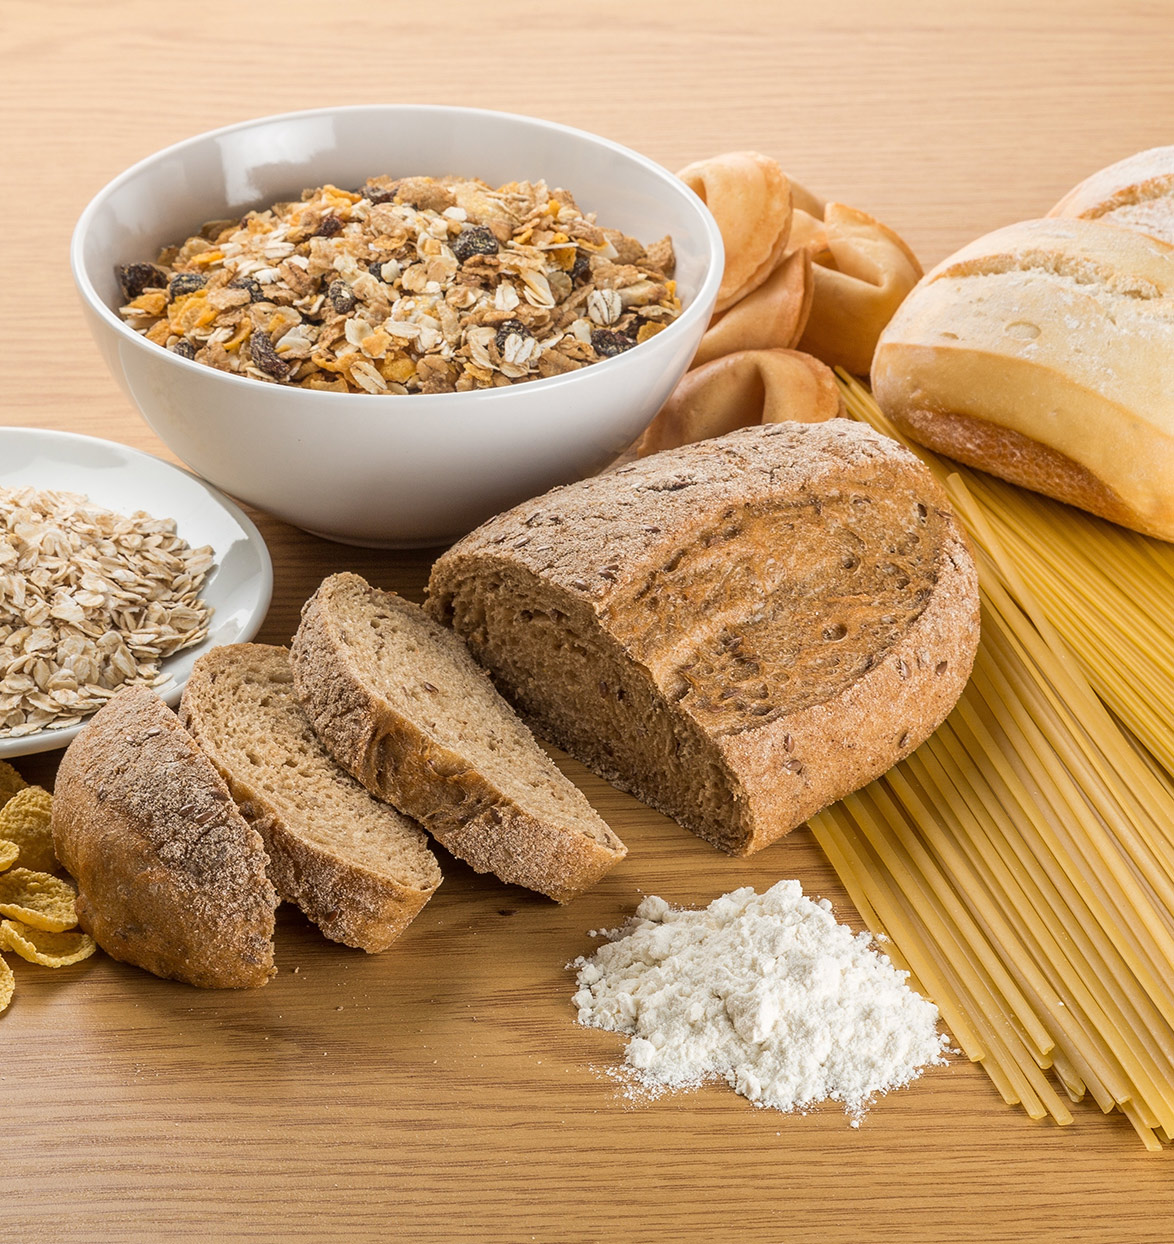 What Exactly Is Gluten?